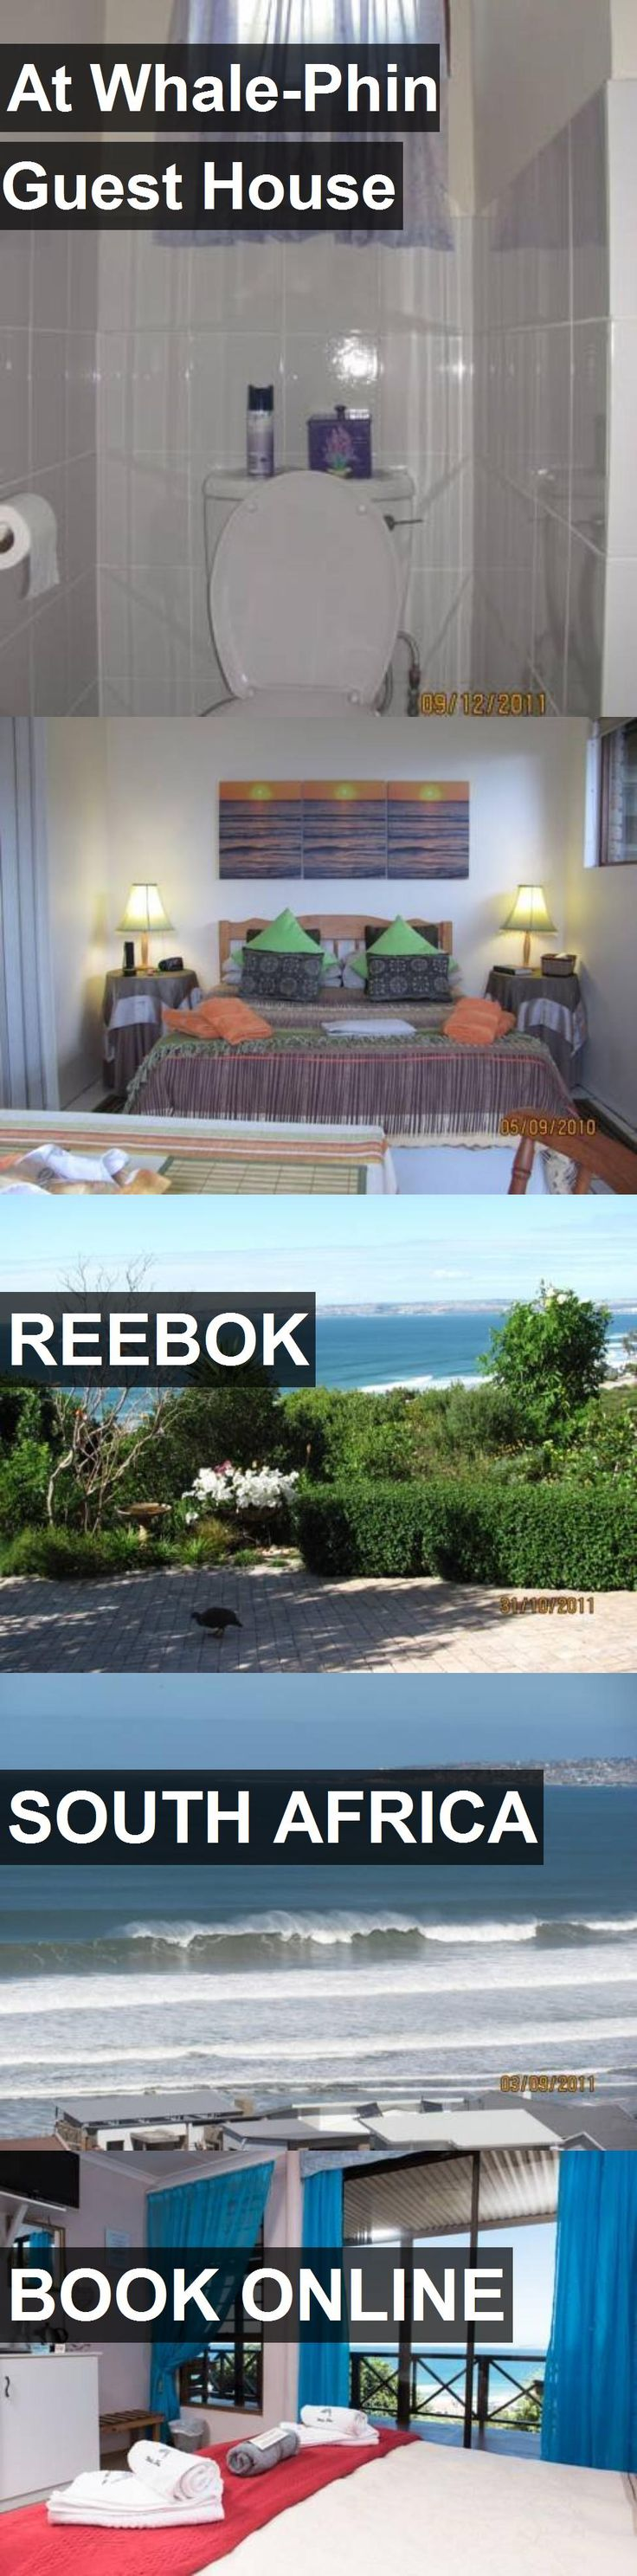 At Whale-Phin Guest House in Reebok, South Africa. For more information, photos, reviews and best prices please follow the link. #SouthAfrica #Reebok #travel #vacation #guesthouse